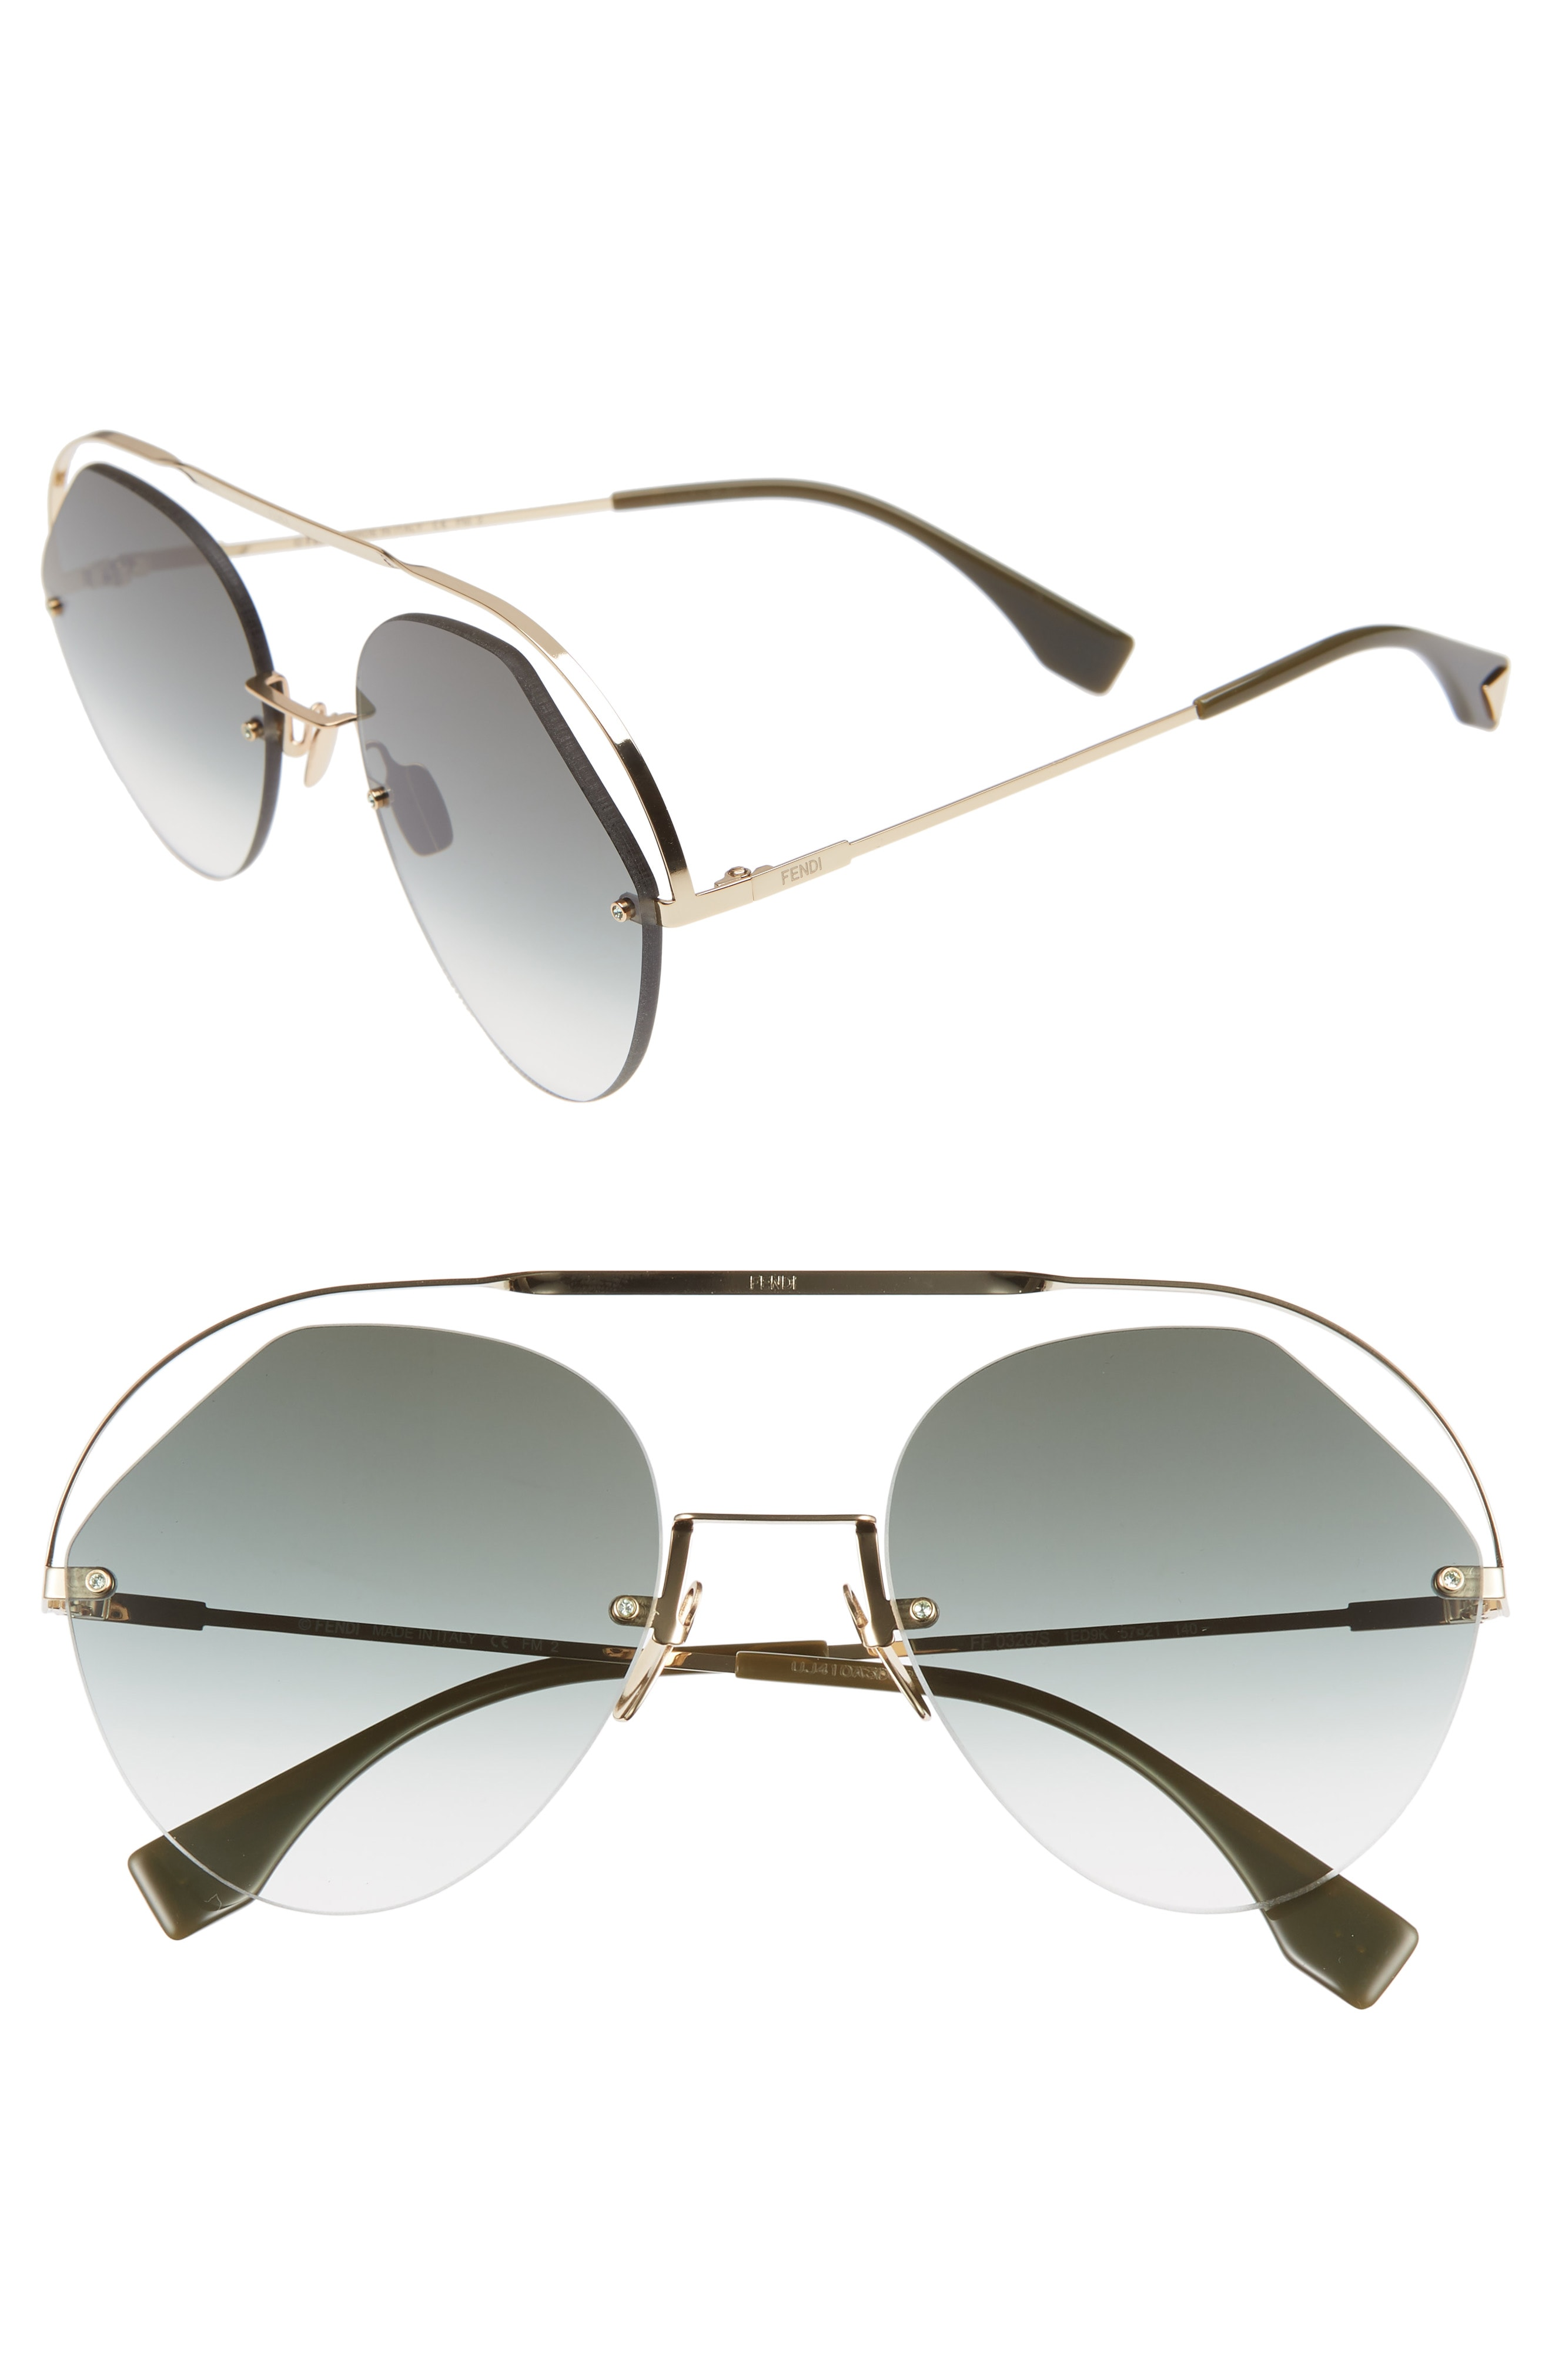 a3013dc2905 Fendi NEW Fendi 0326 S Ribbons   Crystals Green Gradient Cutout Round  Sunglasses Size one size - Sunglasses for Sale - Grailed